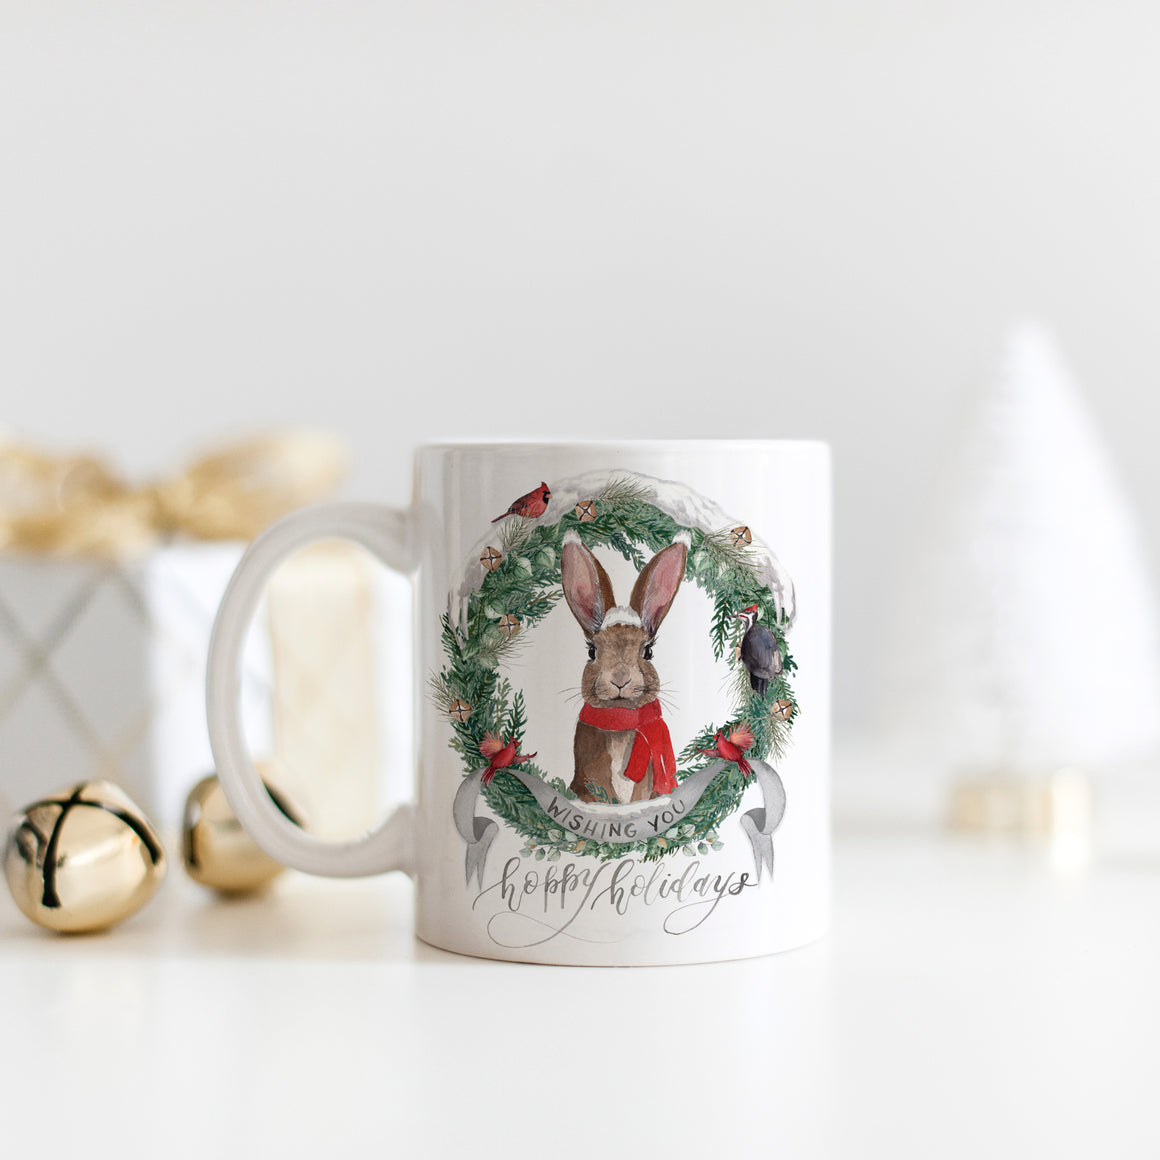 Wishing You Hoppy Holidays Mug